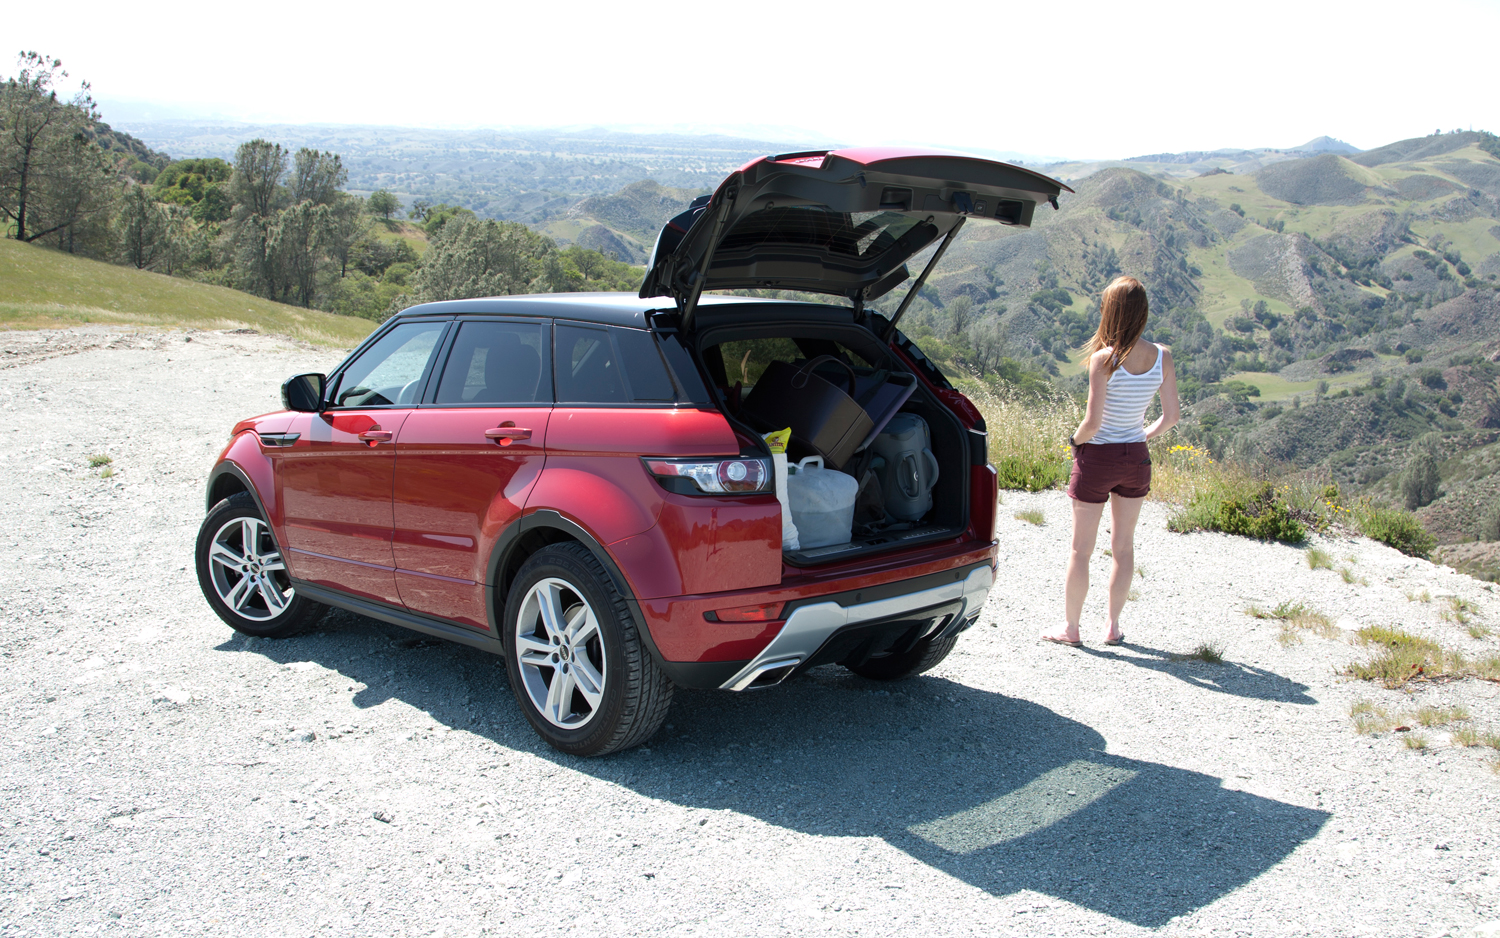 https://enthusiastnetwork.s3.amazonaws.com/uploads/sites/5/2013/02/2012-Land-Rover-Range-Rover-Evoque-rear-three-quarters.jpg?impolicy=entryimage